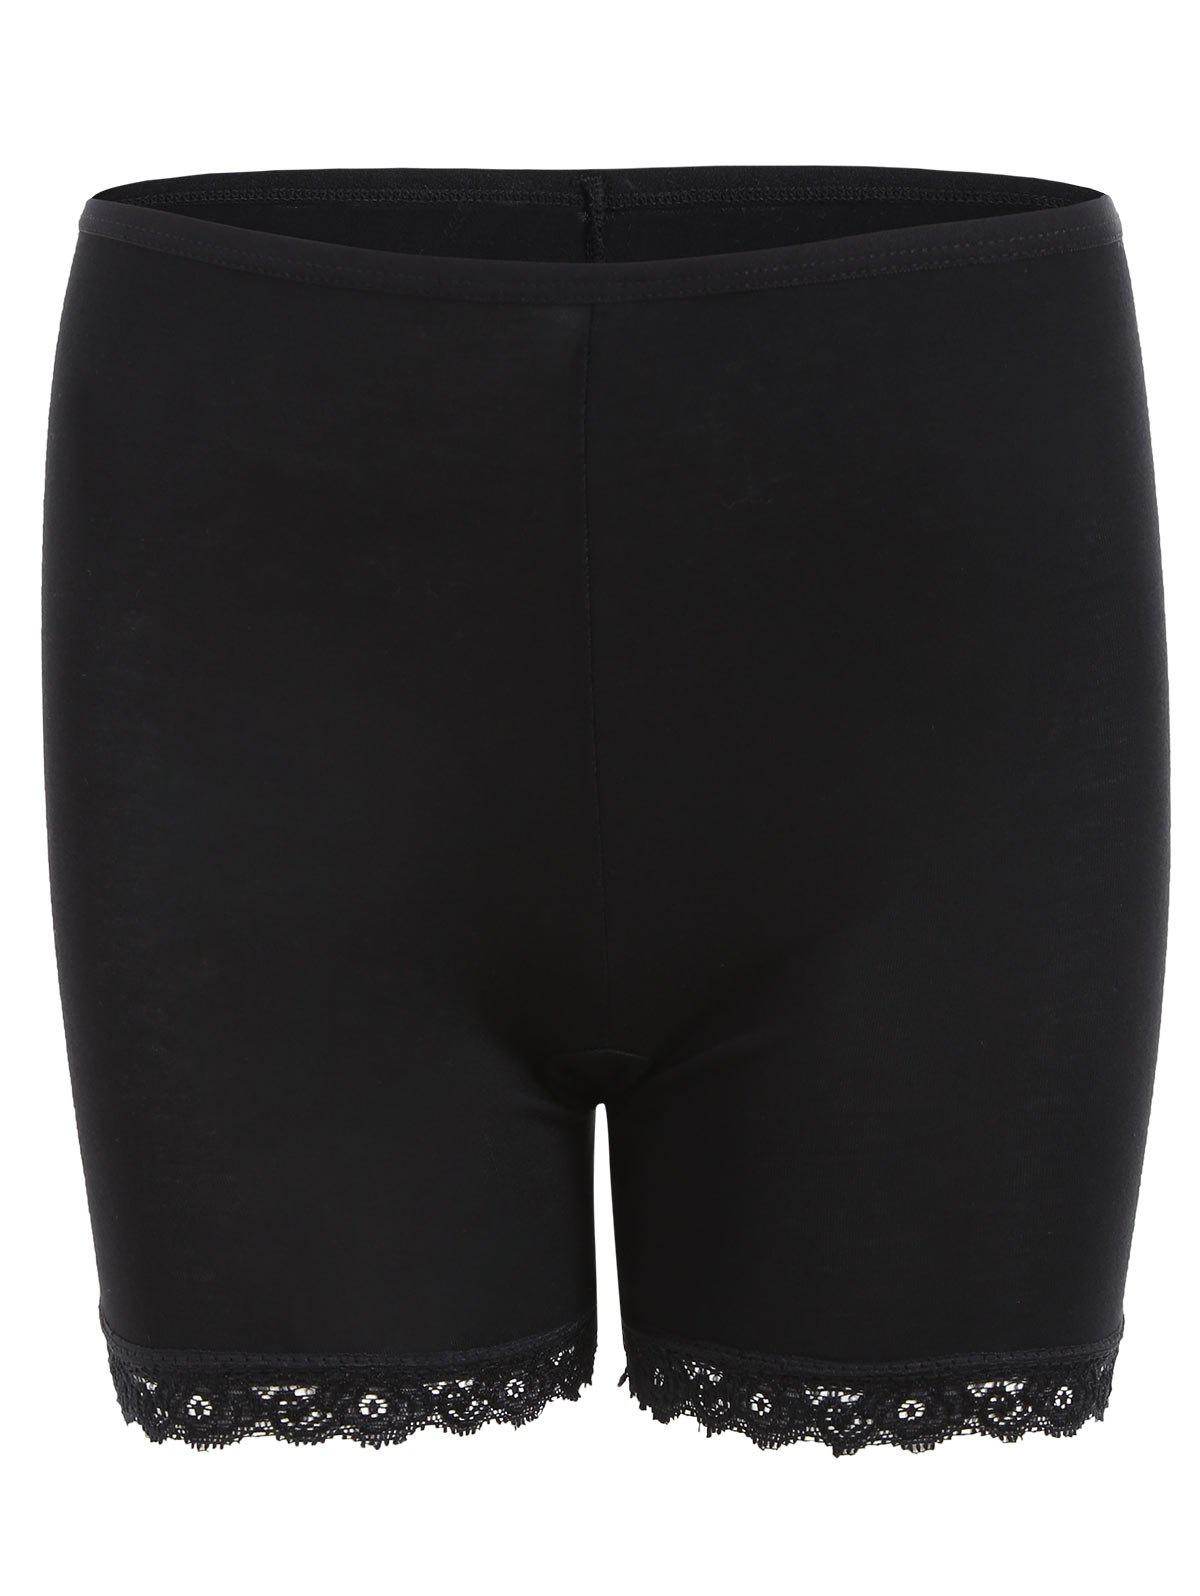 Lace Hem Tight Underpants - BLACK ONE SIZE